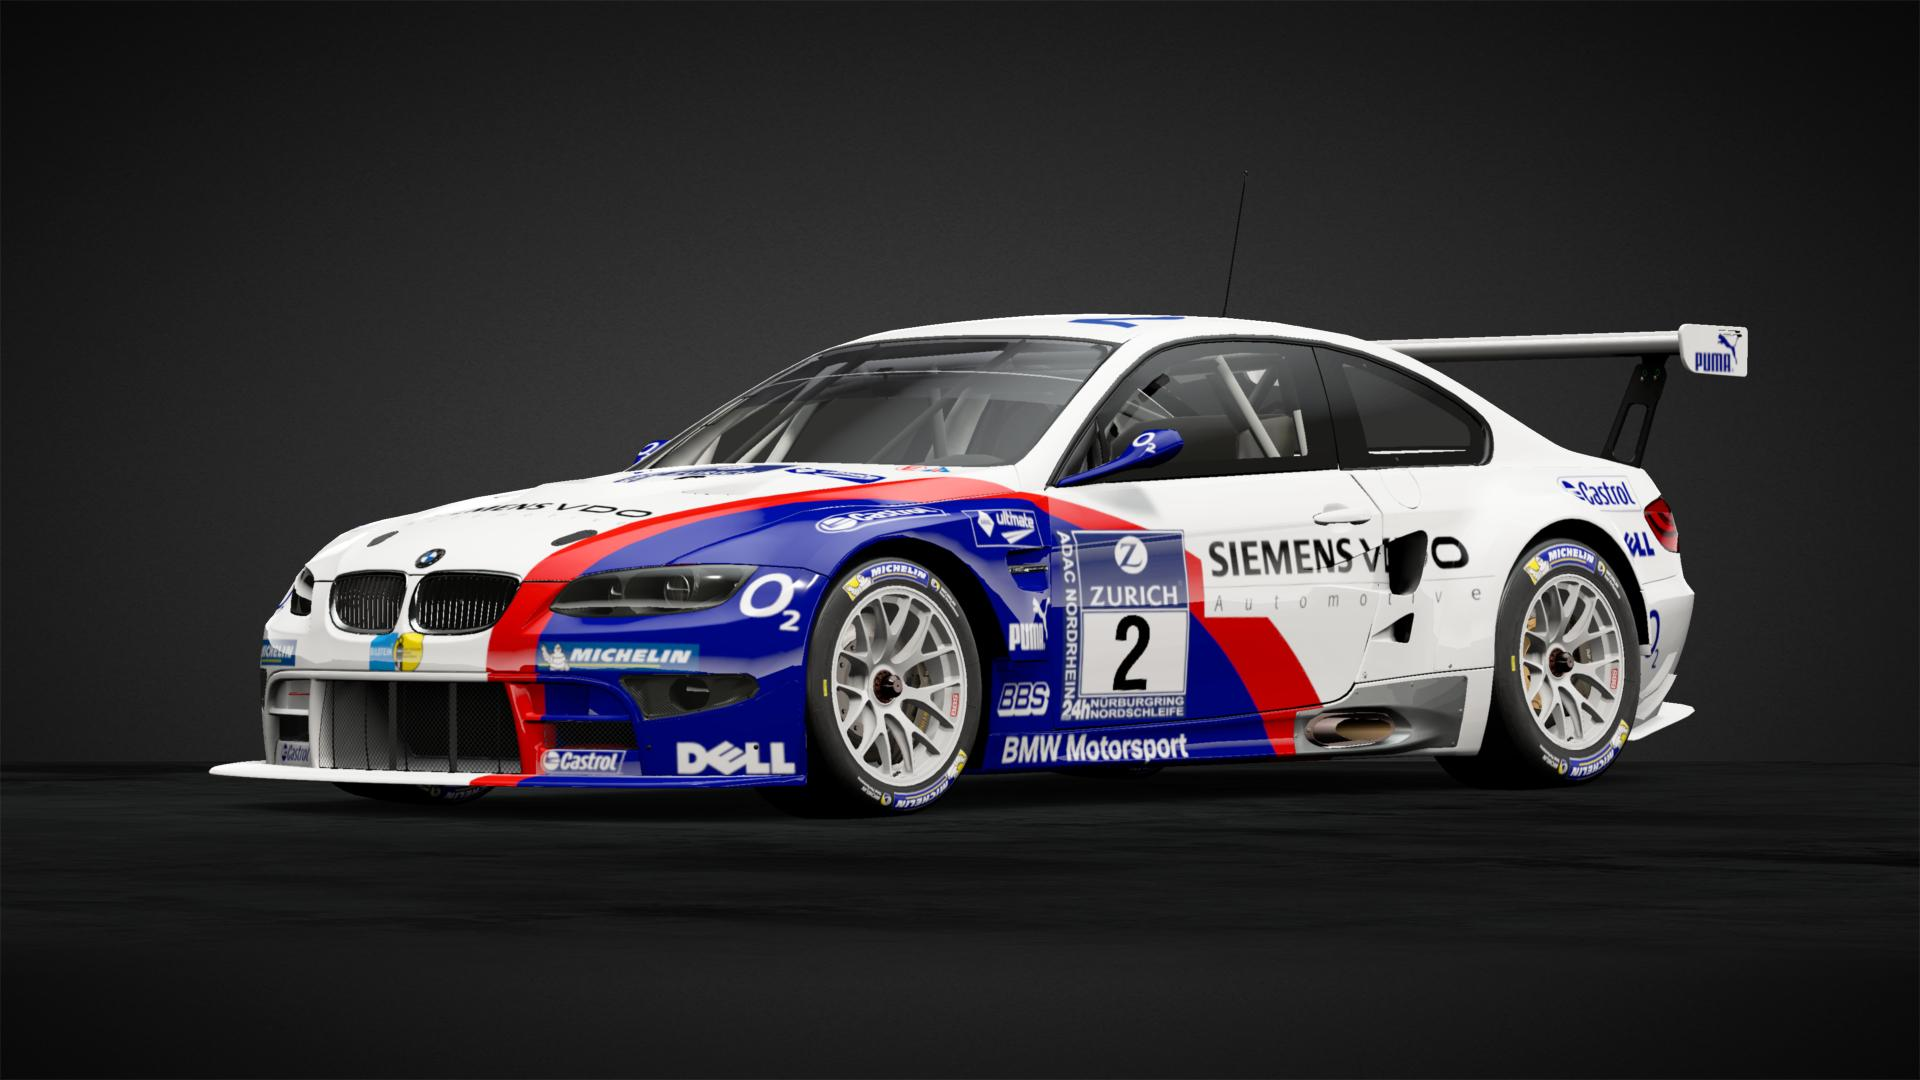 Replica Bmw M3 E46 Gtr 2004 Car Livery By Mariotej22 Community